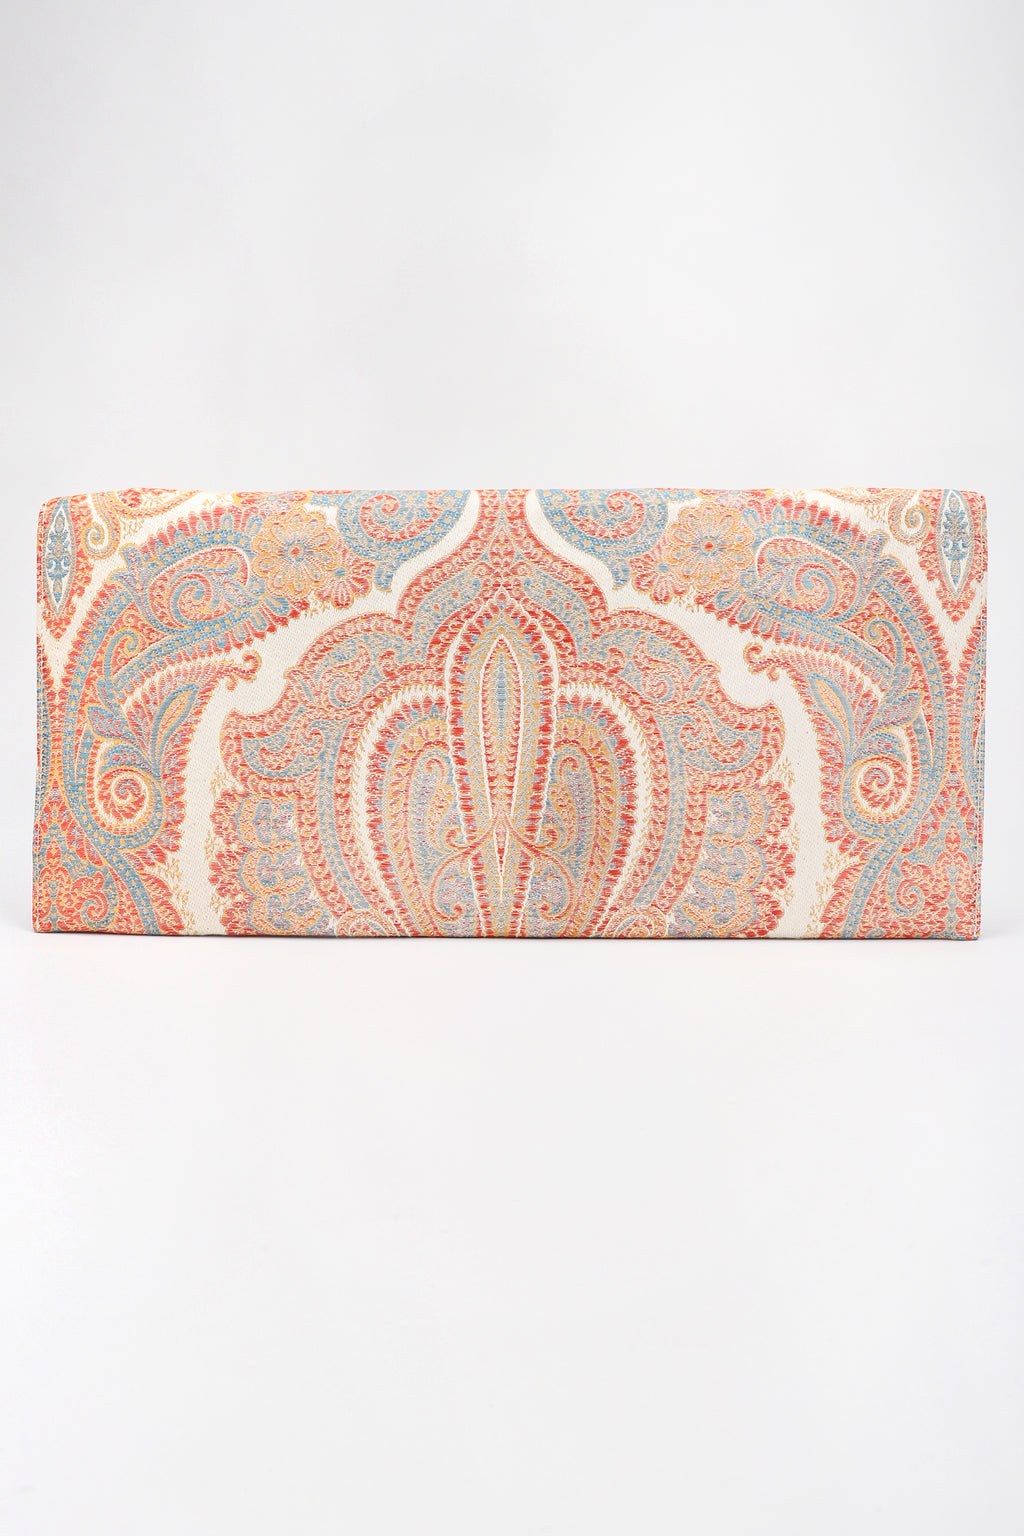 Recess Los Angeles Designer Consignment Vintage Original Bienen-Davis Golden Silk Brocade Clutch